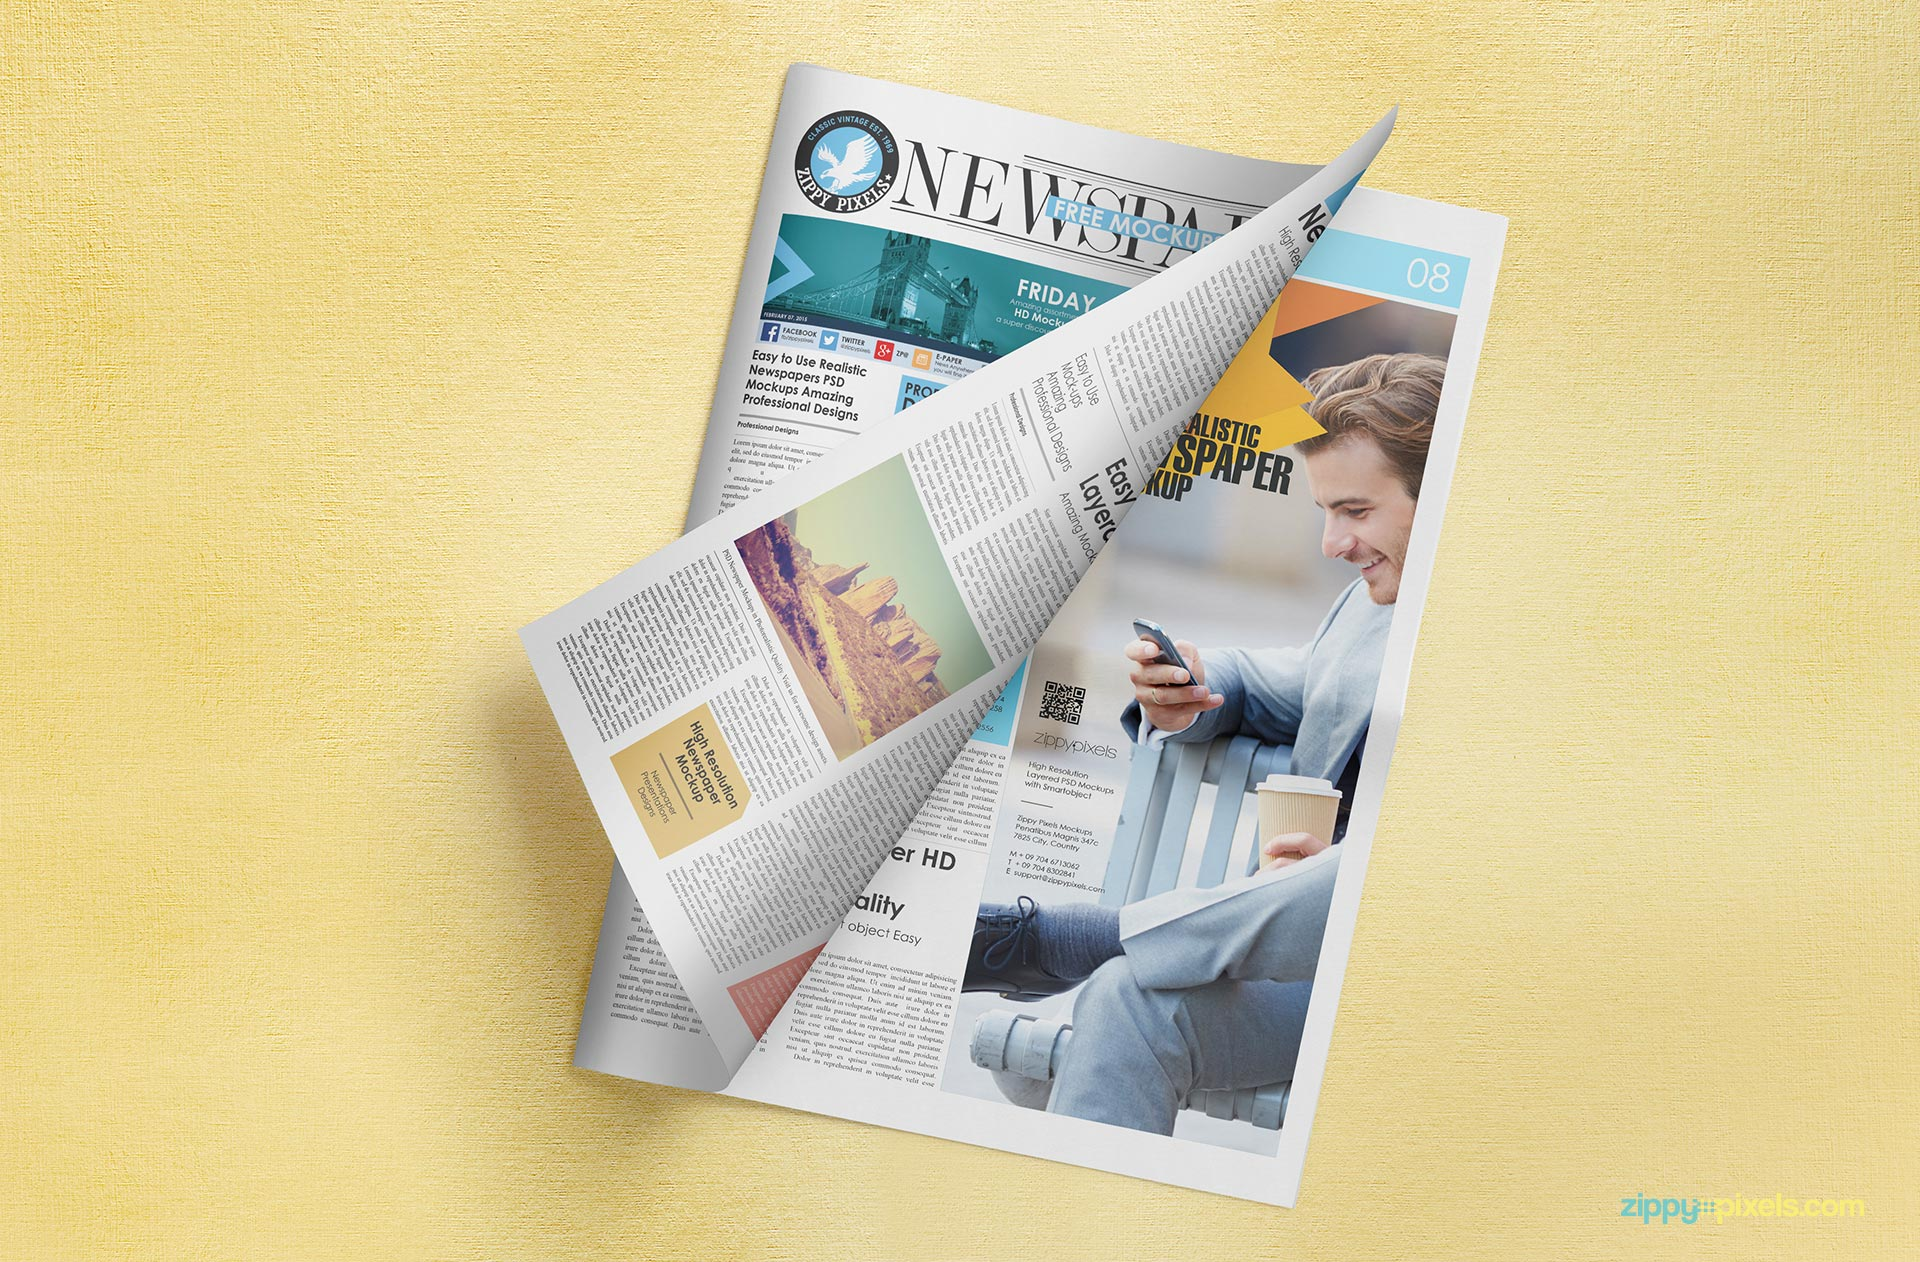 Free newspaper adverts mockup on a customizable background.